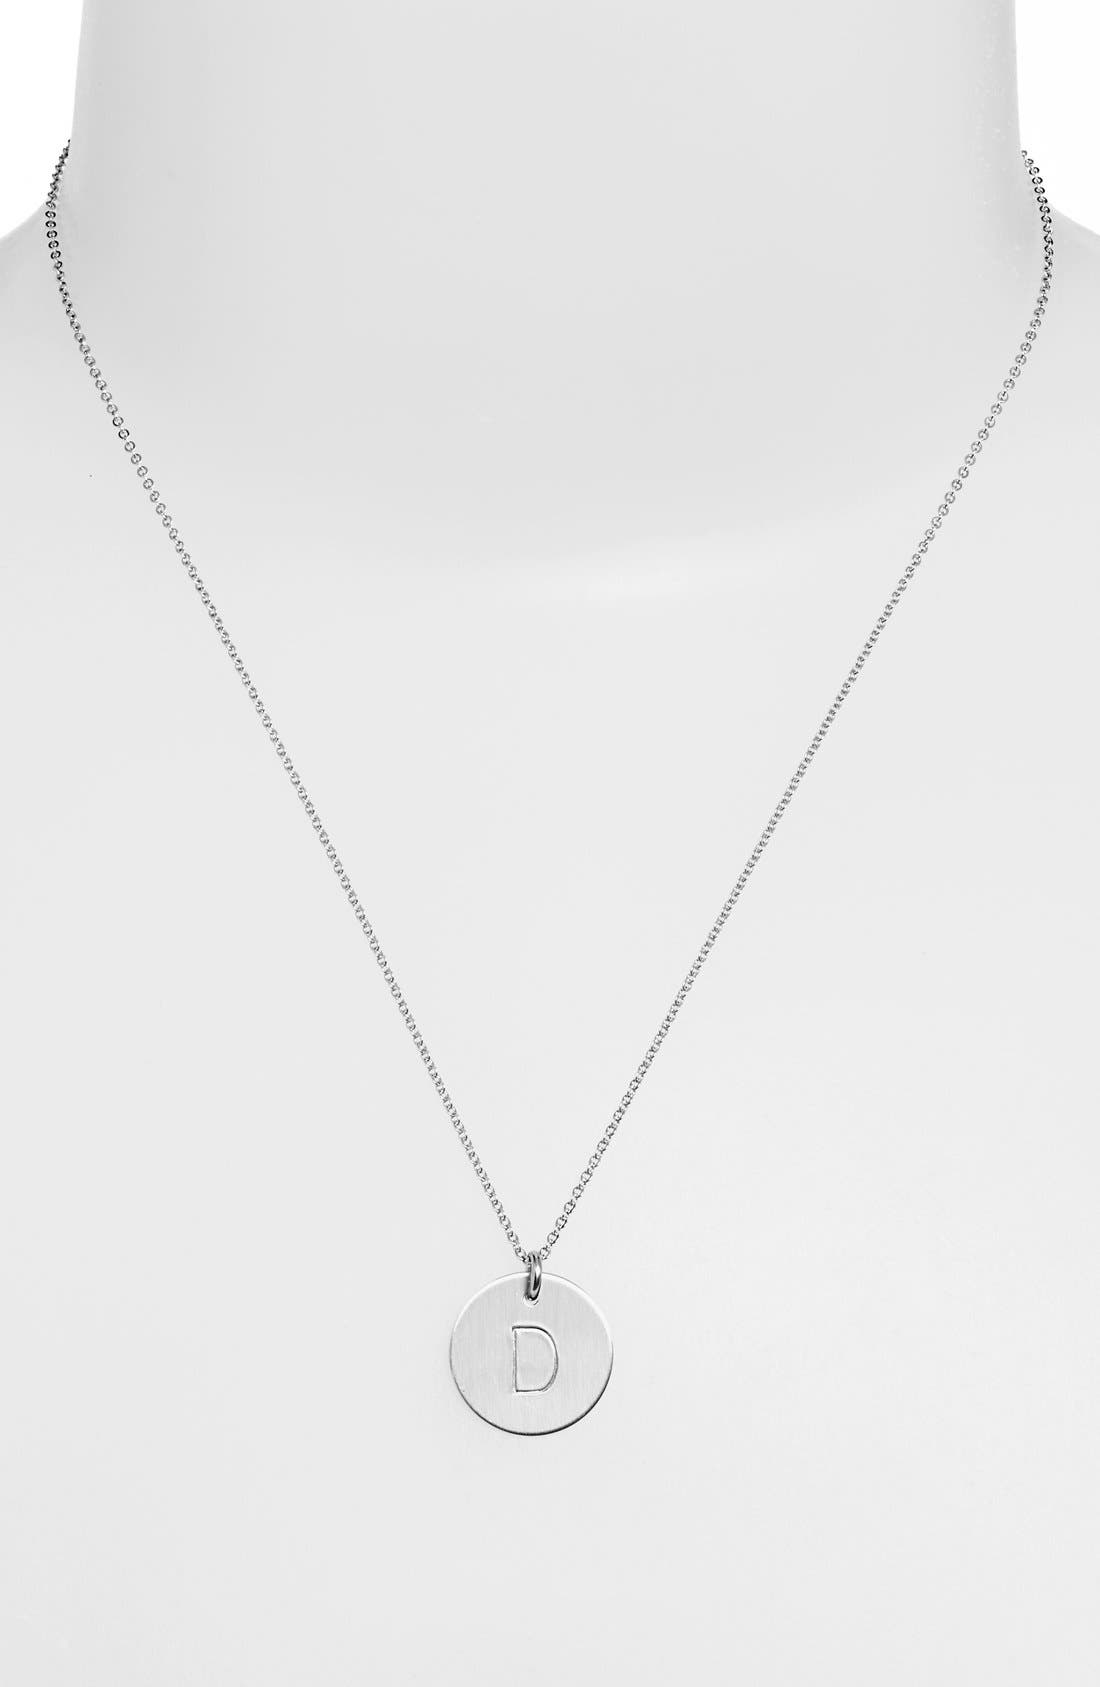 NASHELLE Sterling Silver Initial Disc Necklace, Main, color, STERLING SILVER D